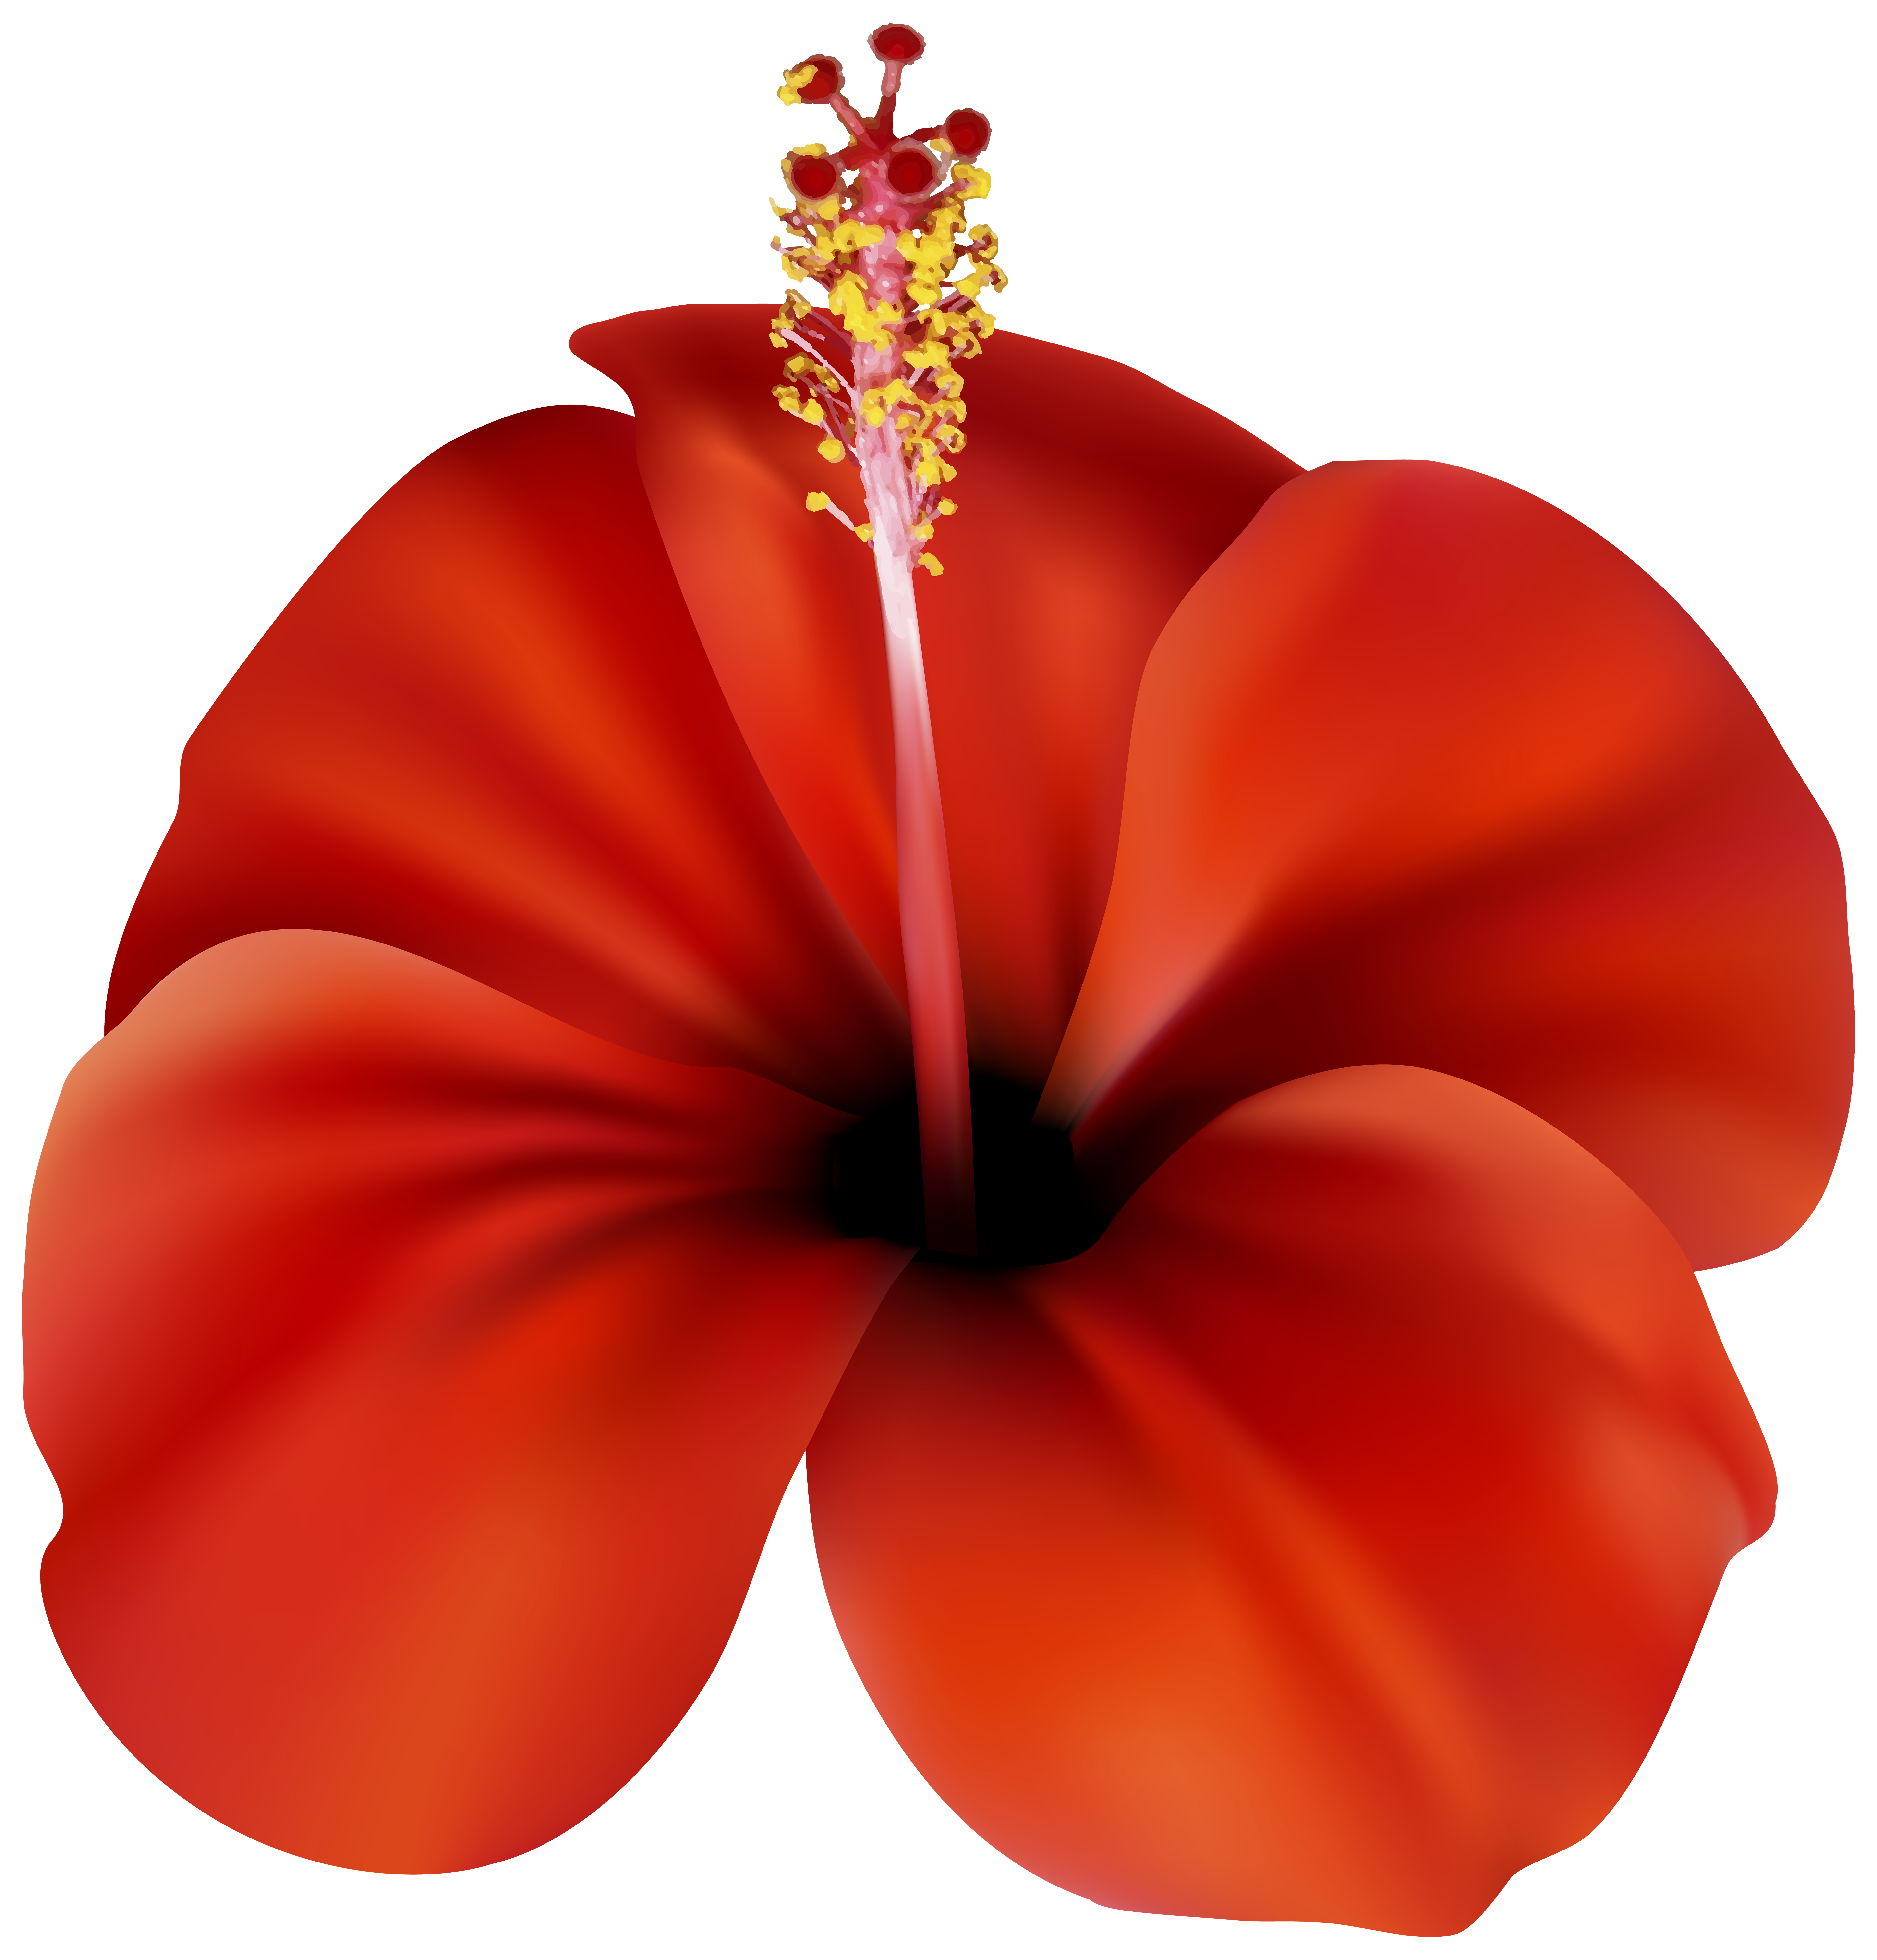 Shirt clipart hawiian. Red flower png clip